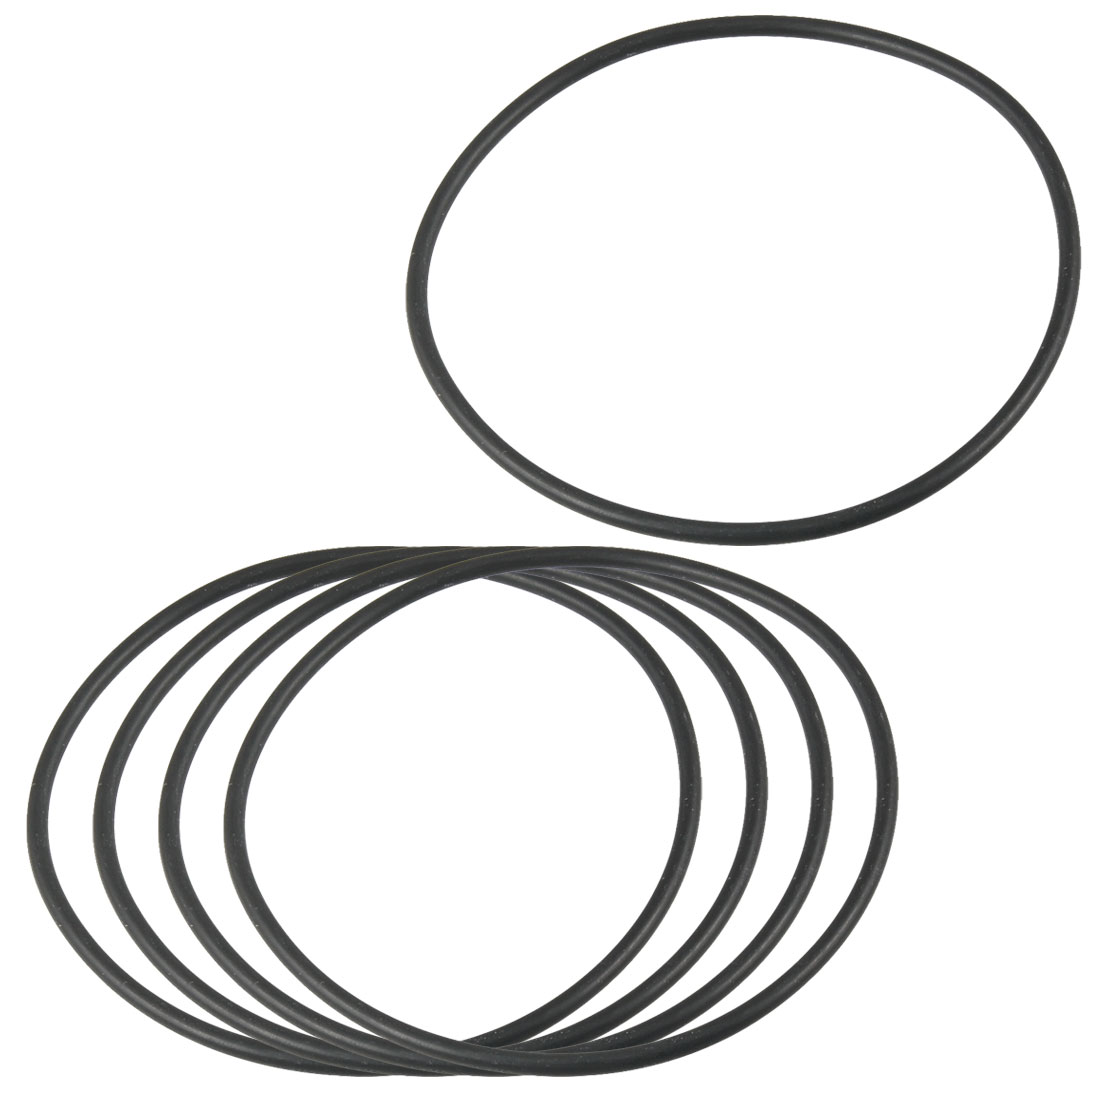 uxcell 5 pcs 2 4mm flexible rubber o ring sealing washer black id 105 Howitzer Shell